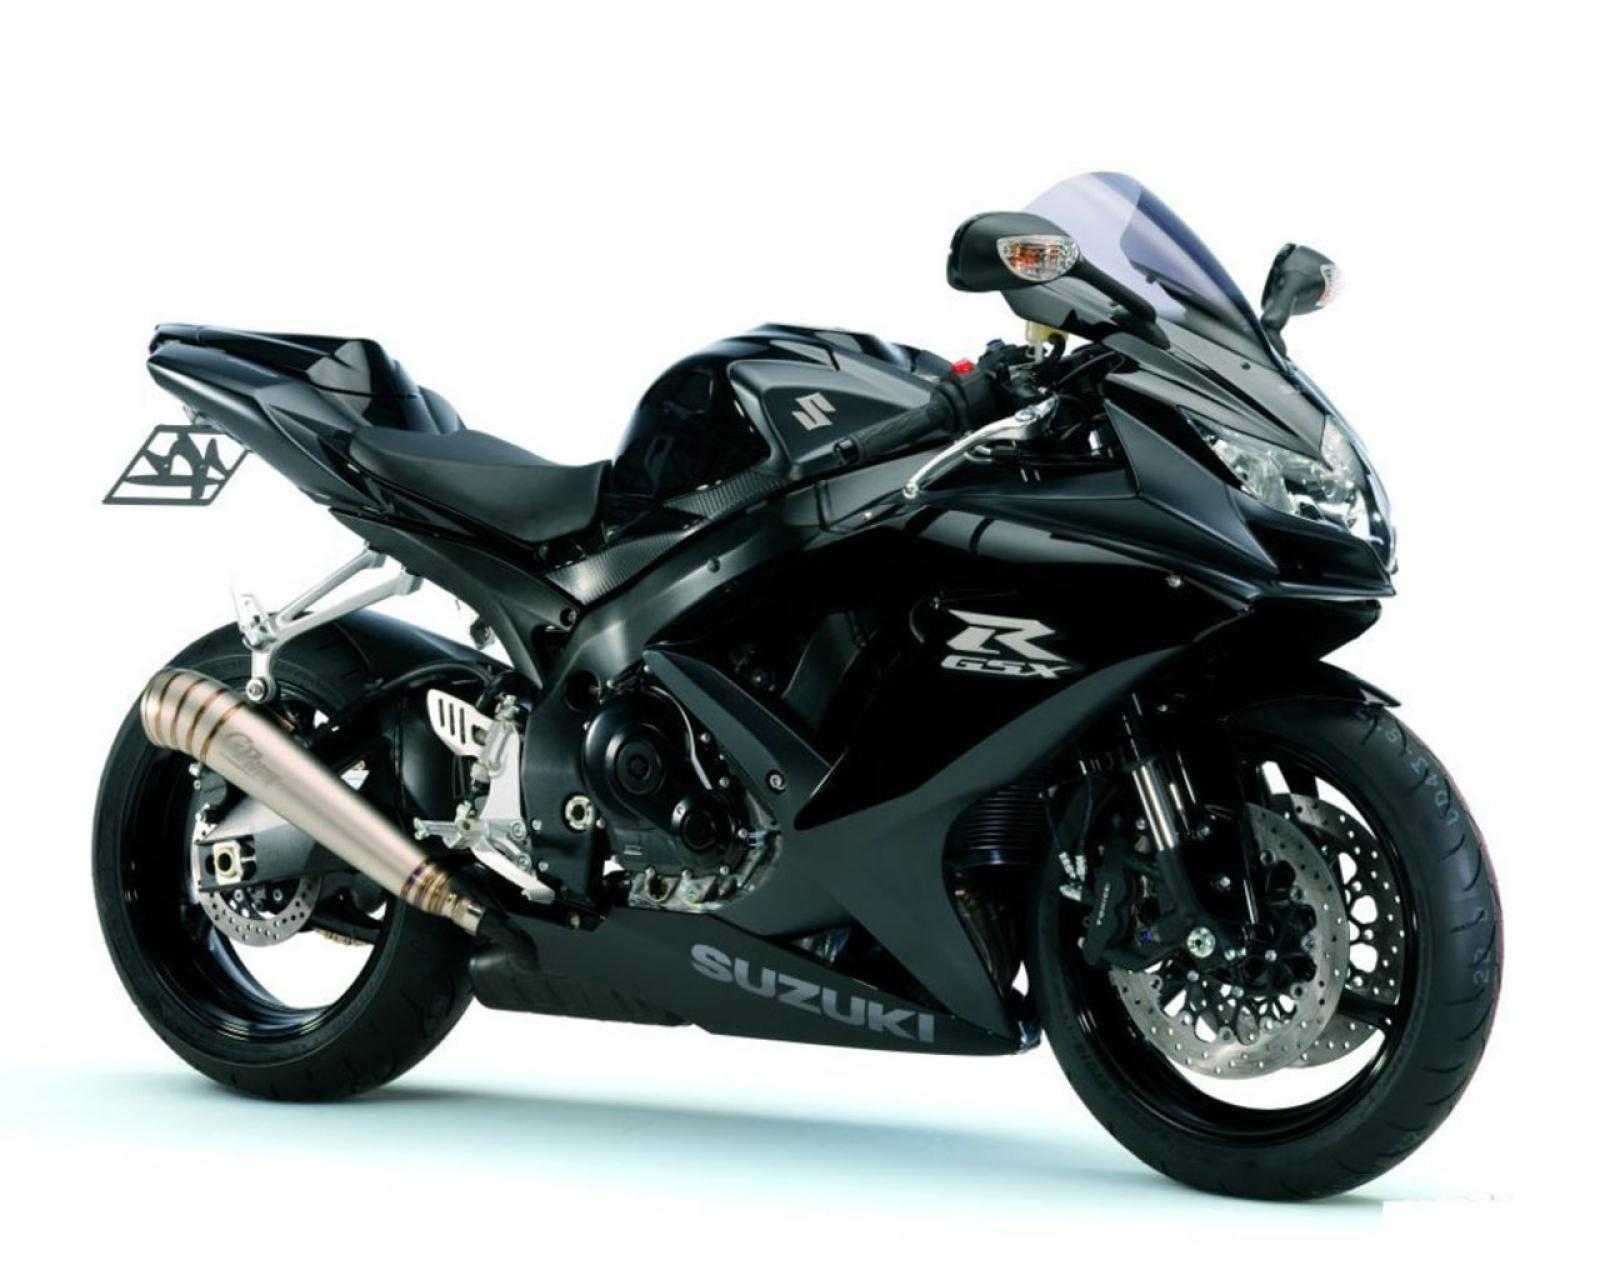 suzuki suzuki gsx r 750 yoshimura moto zombdrive com. Black Bedroom Furniture Sets. Home Design Ideas